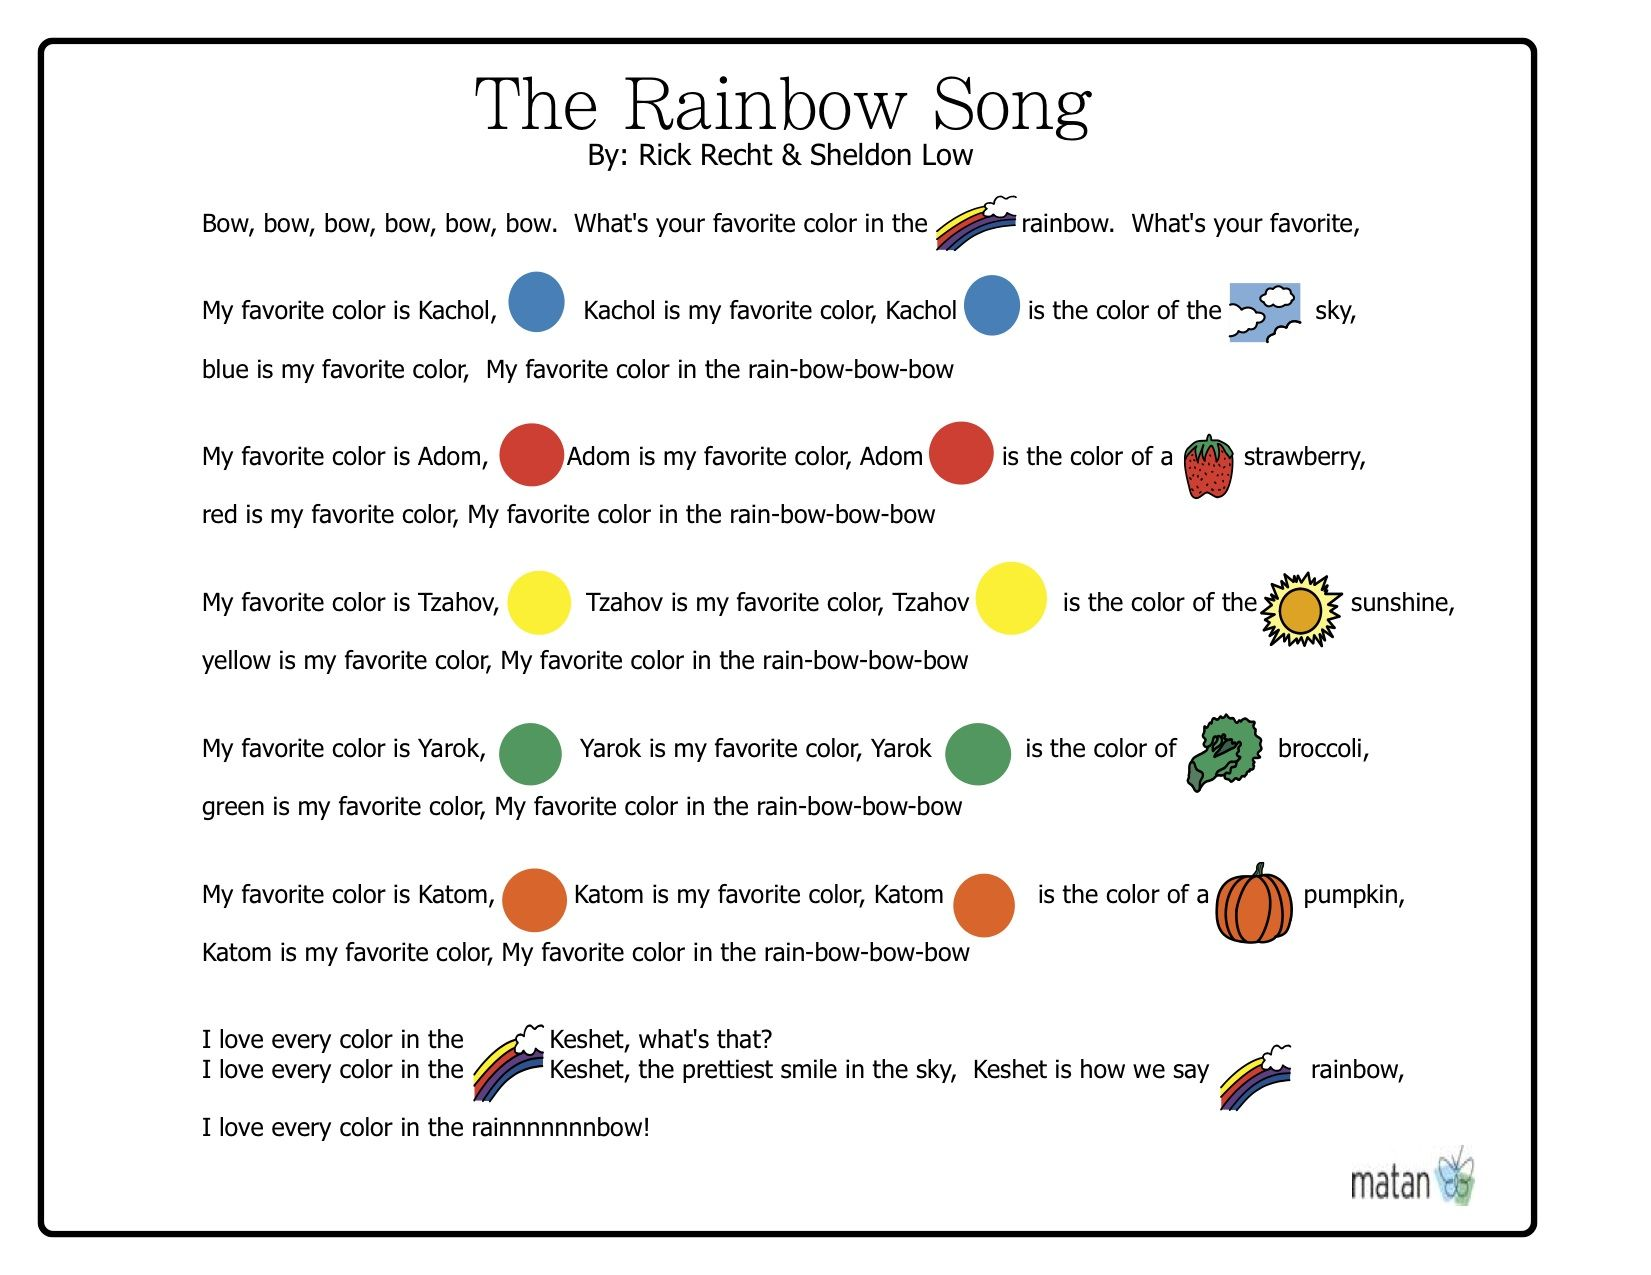 another great song by sheldon low rick recht use this one to teach the hebrew words for the colors in the rainbow the rainbow song lyrics - All The Colors Of The Rainbow Song